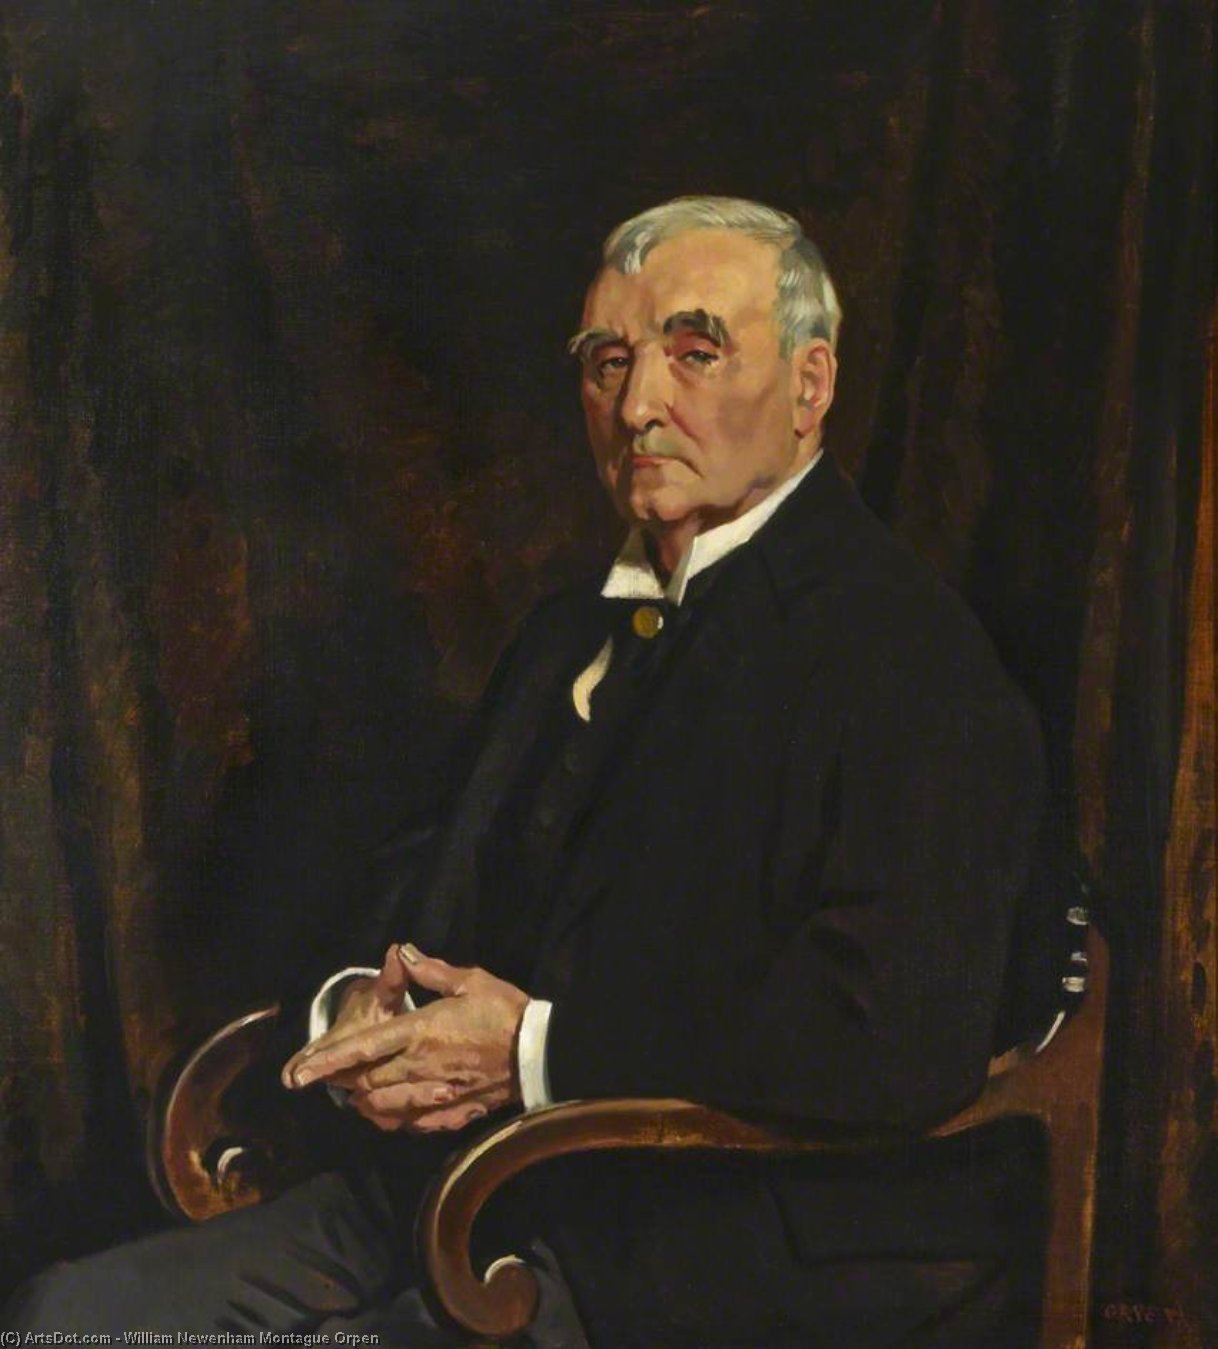 大卫 劳埃德  罗伯茨  通过 William Newenham Montague Orpen (1878-1931, Ireland)